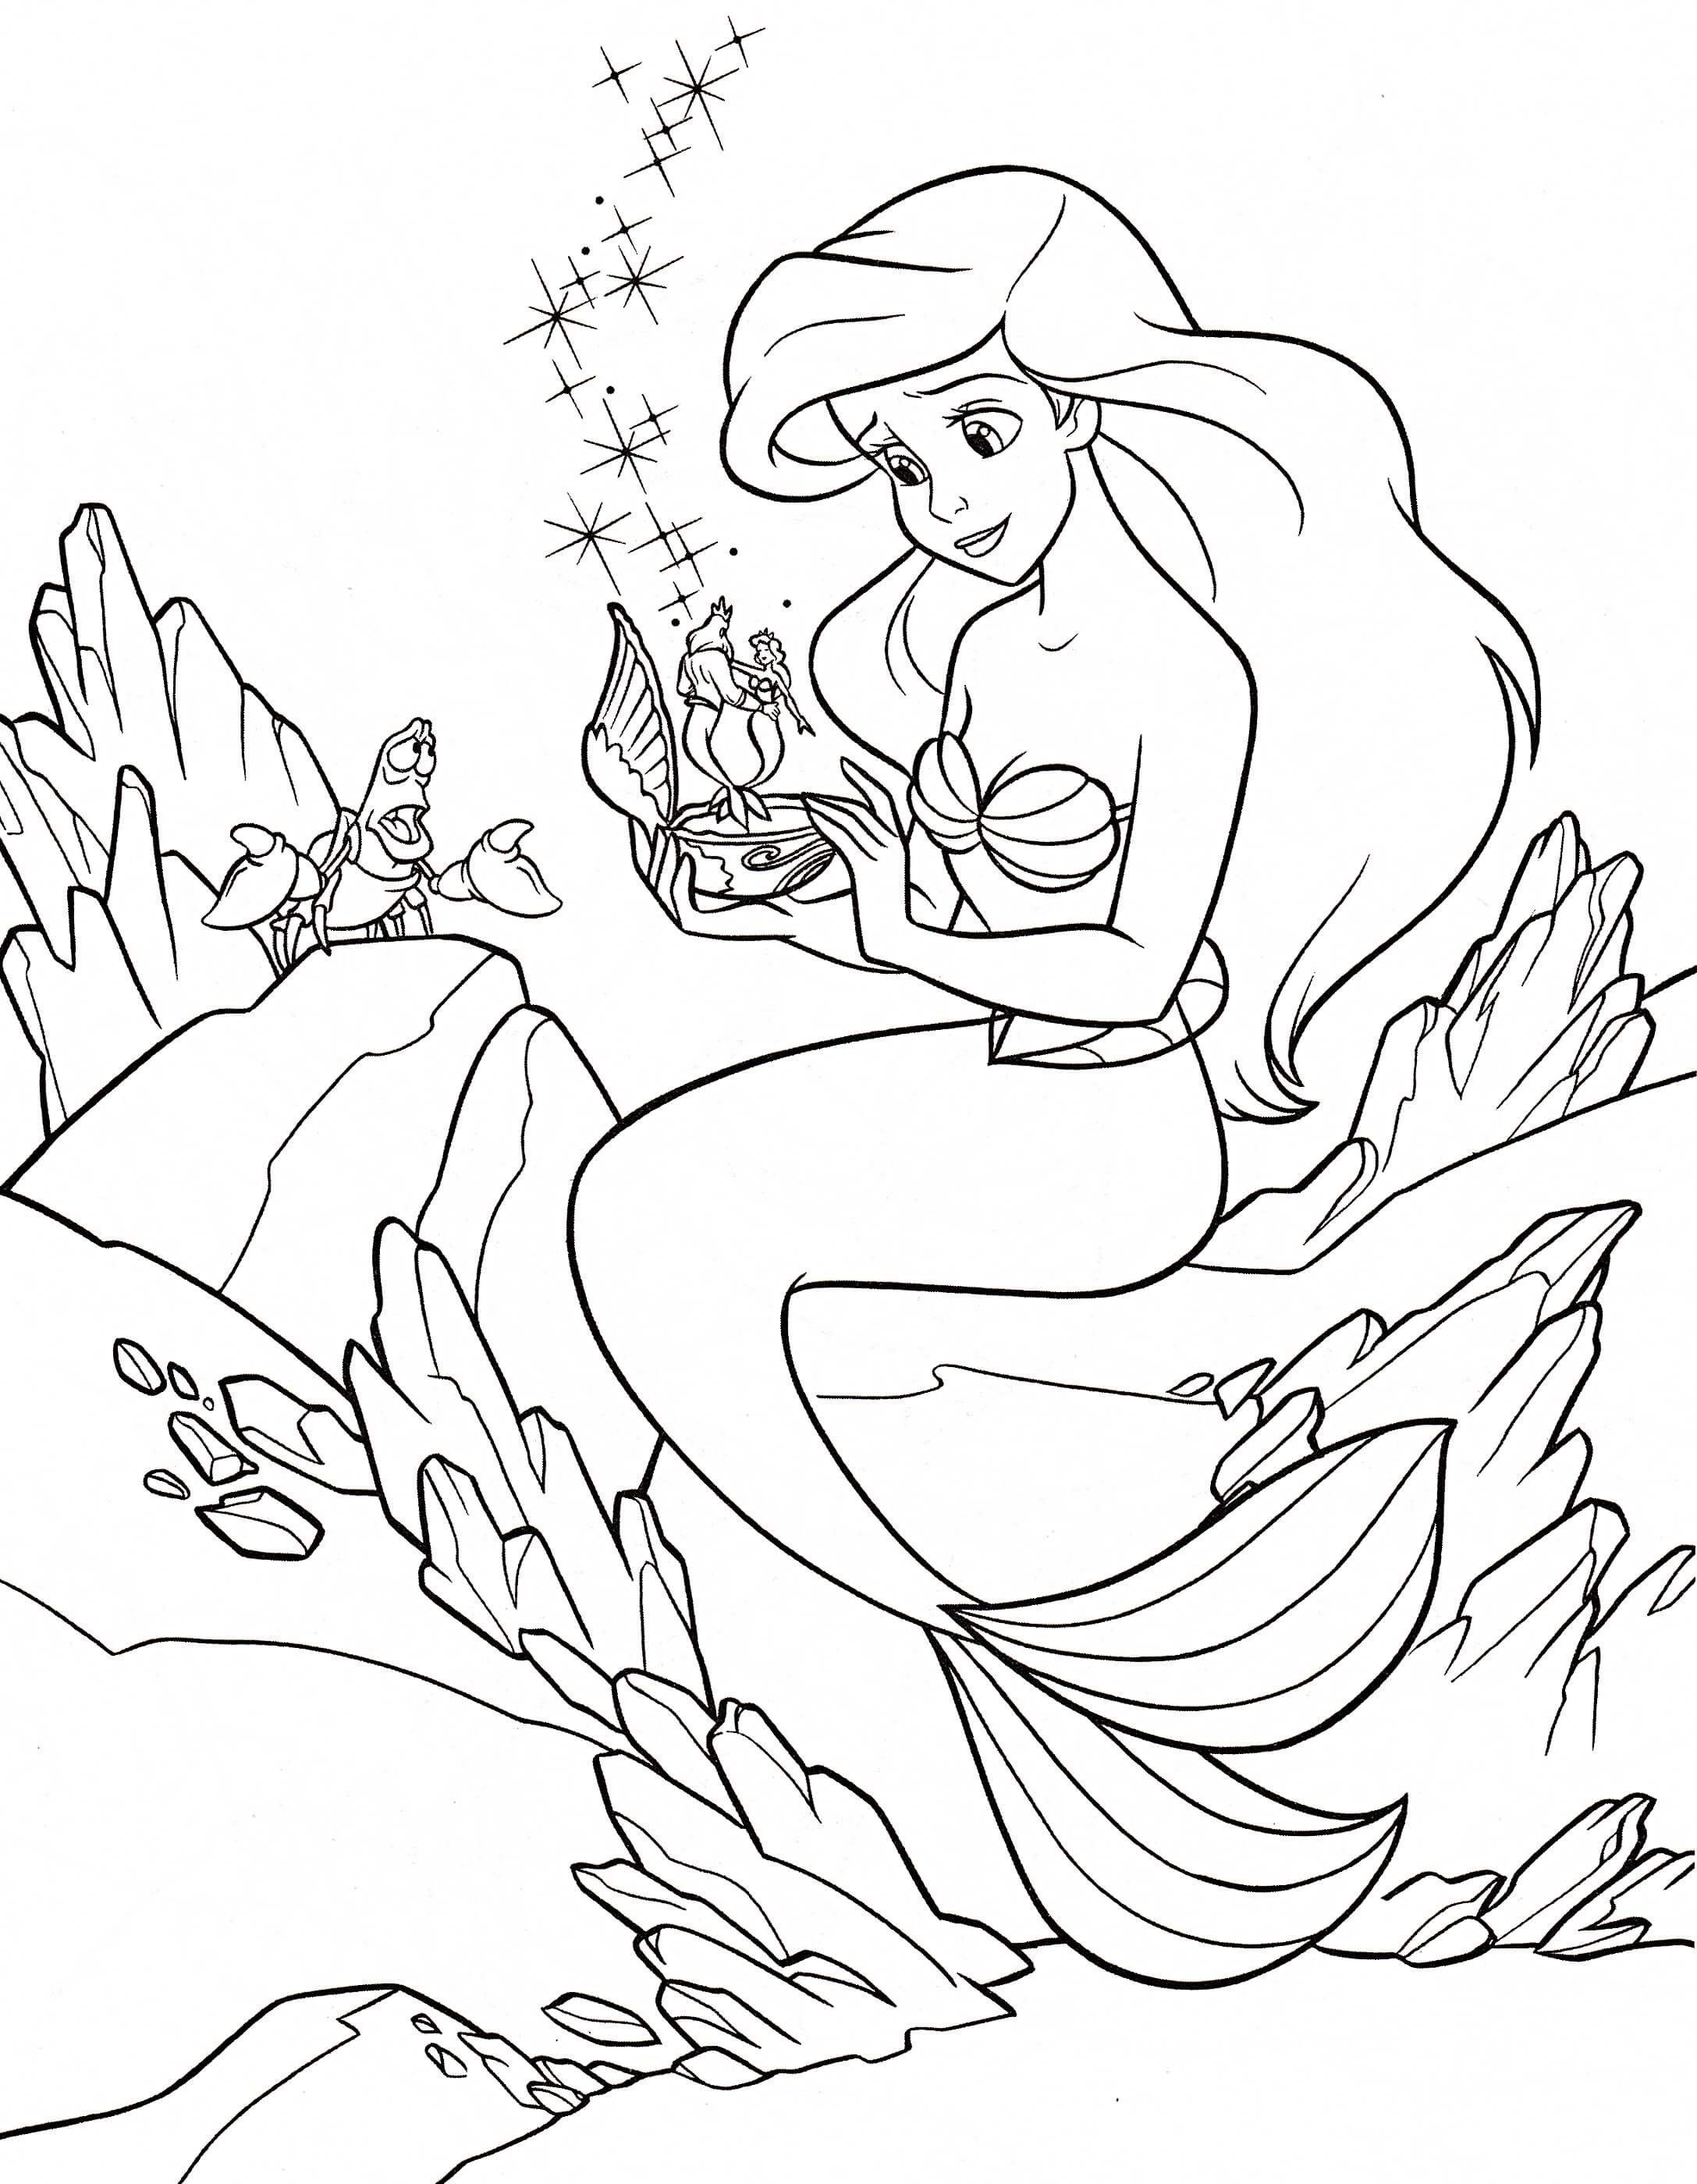 Princess Coloring Pages Printable Pdf Through The Thousands Of Photos On Line Con Ariel Coloring Pages Disney Princess Coloring Pages Princess Coloring Pages